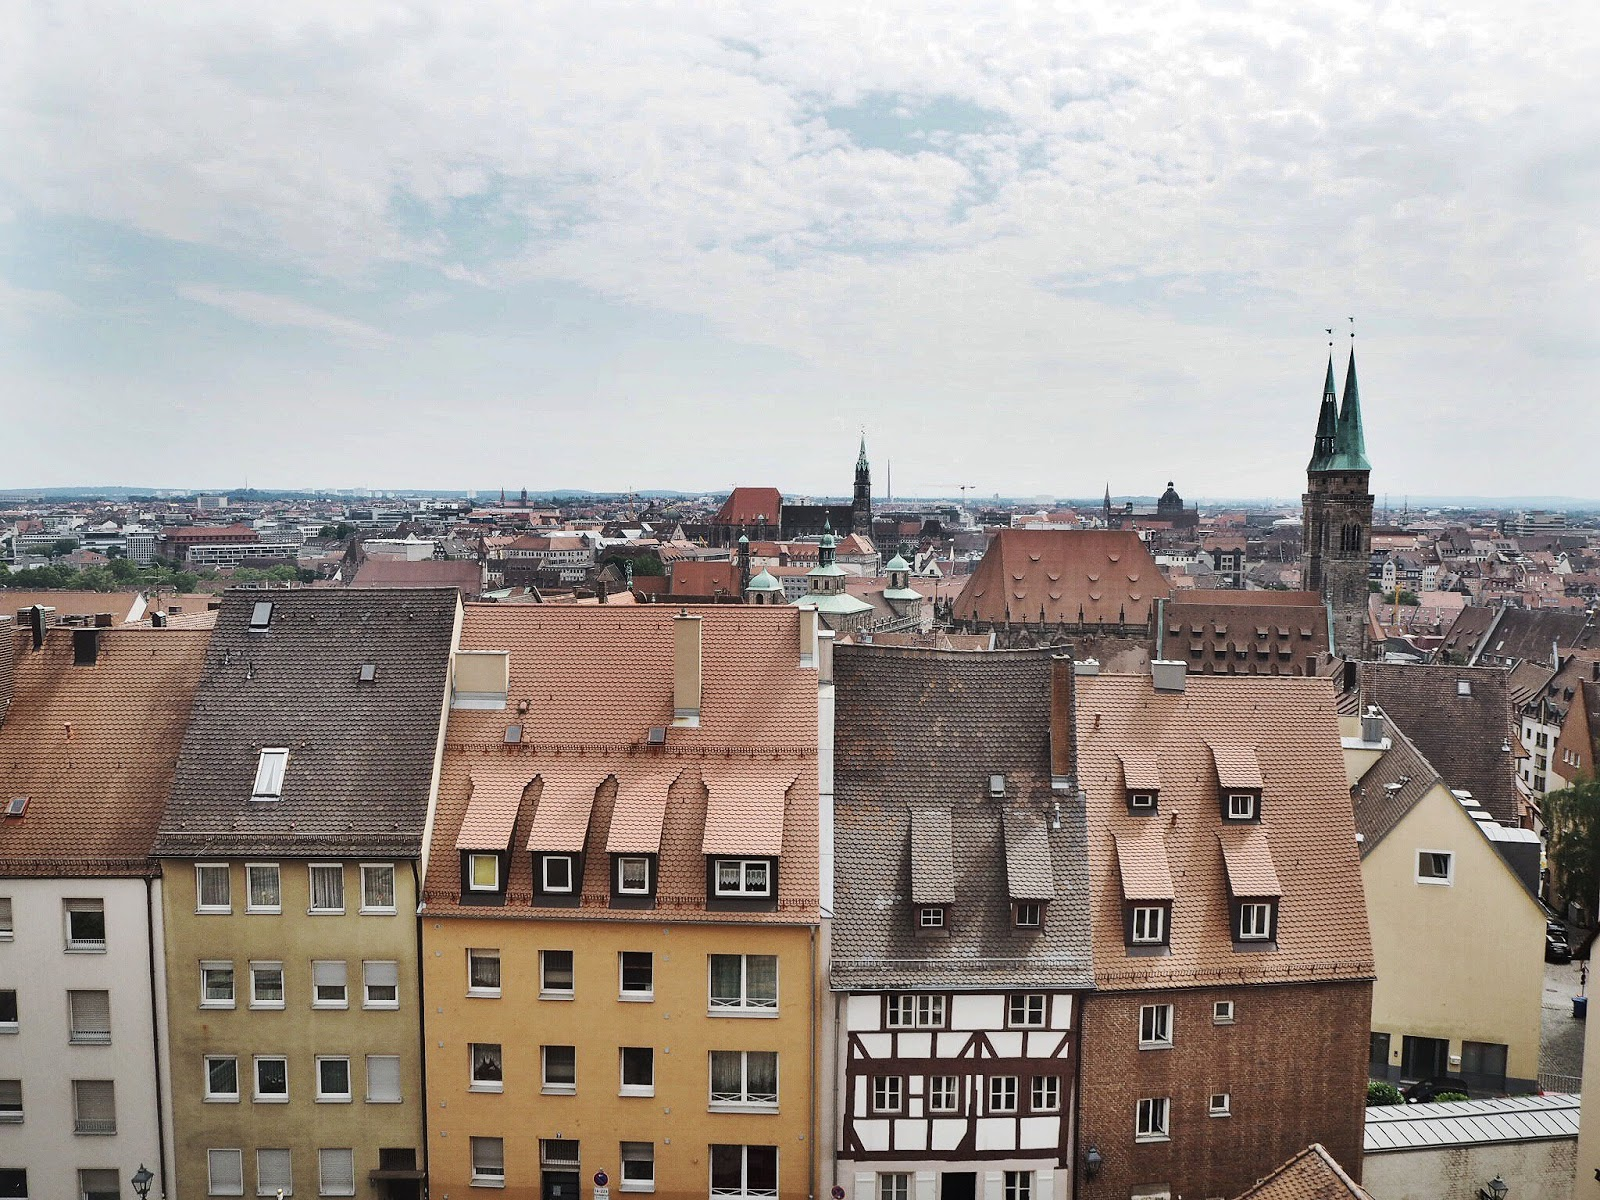 A view from Nuremberg Castle